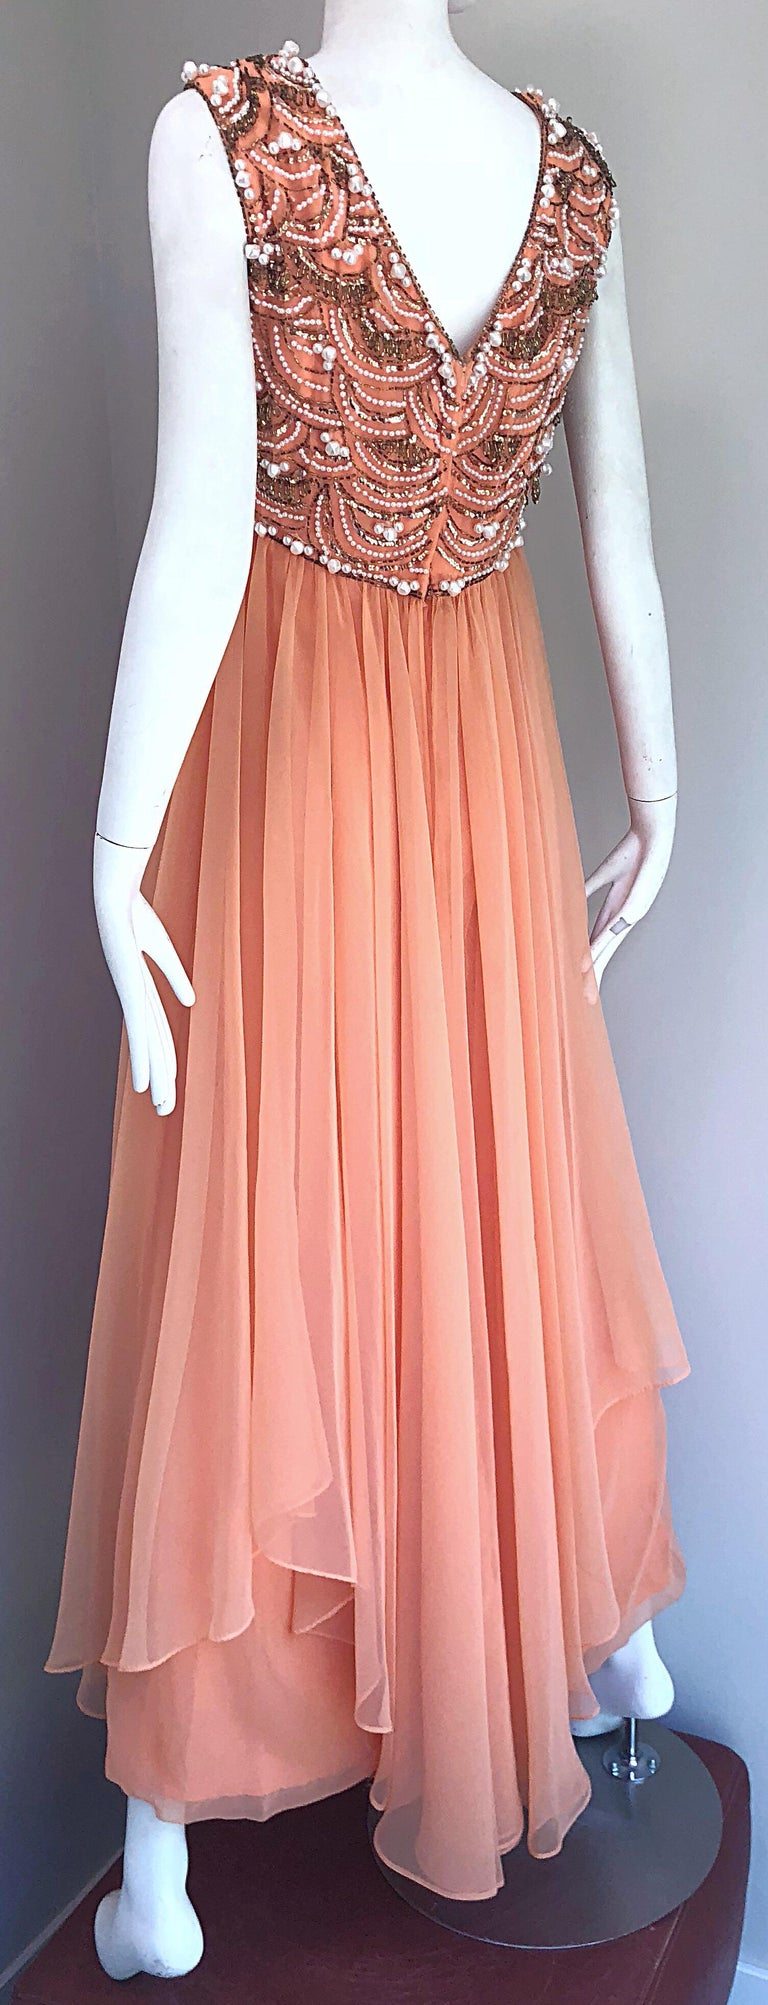 1960s Isabell Gerhart Sherbet Coral Demi Couture Beaded Chiffon 60s Gown Dress For Sale 9